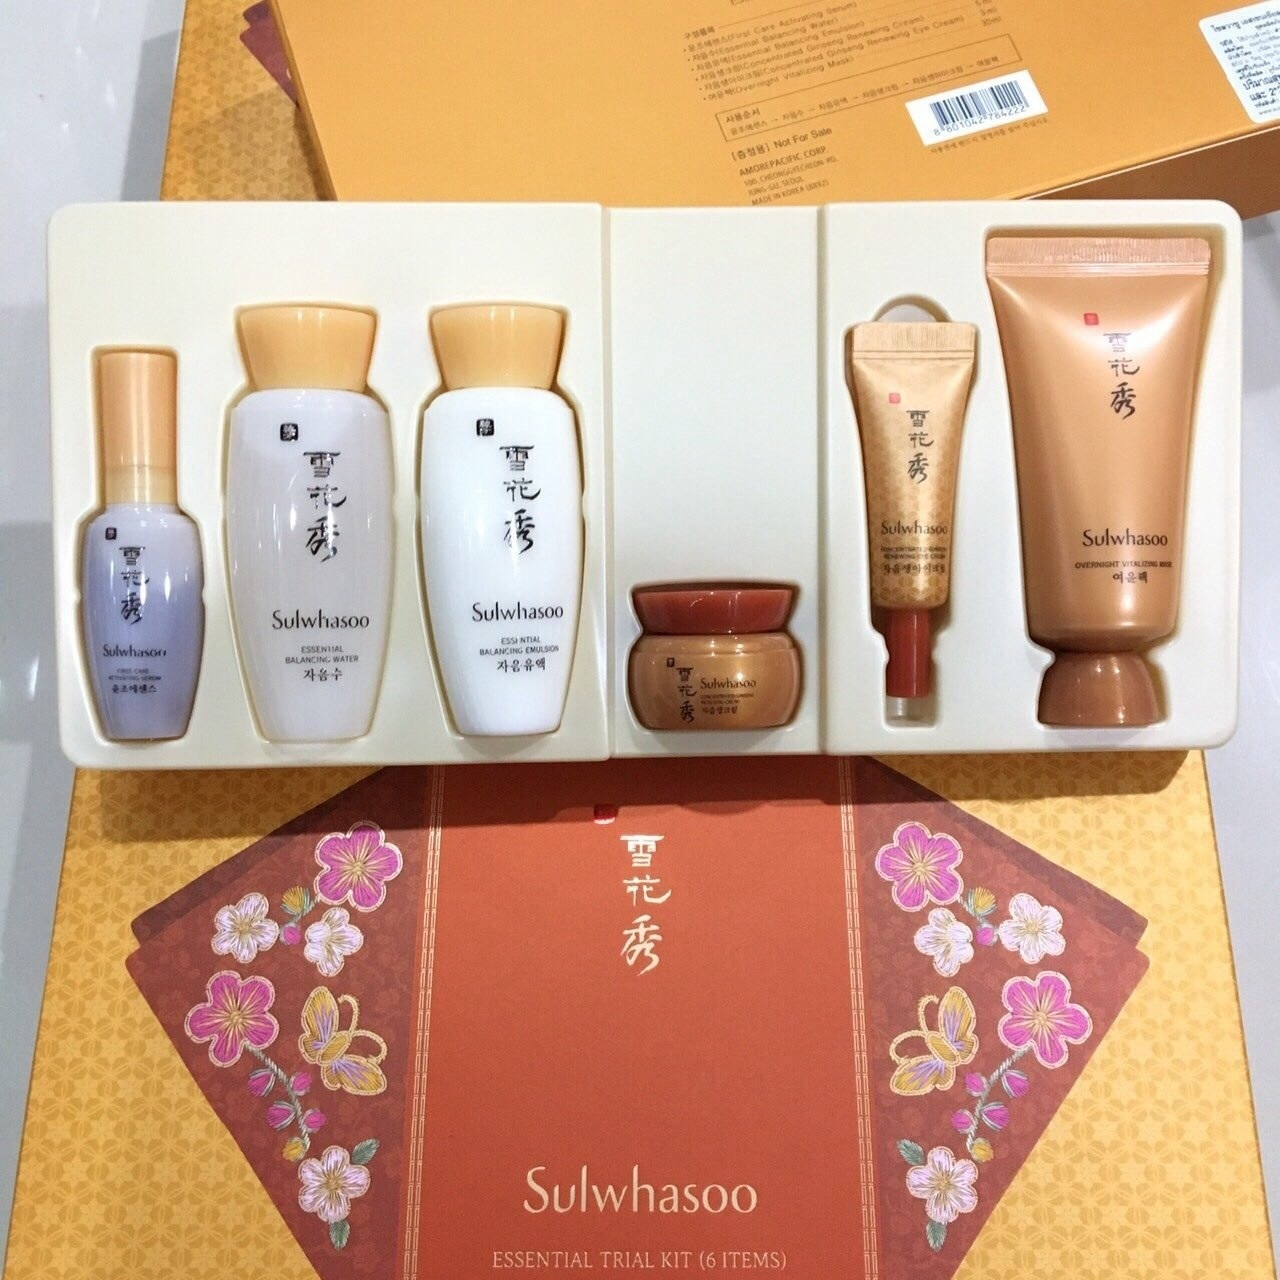 #Sulwhasoo Essential Trial Kit (6 Items)